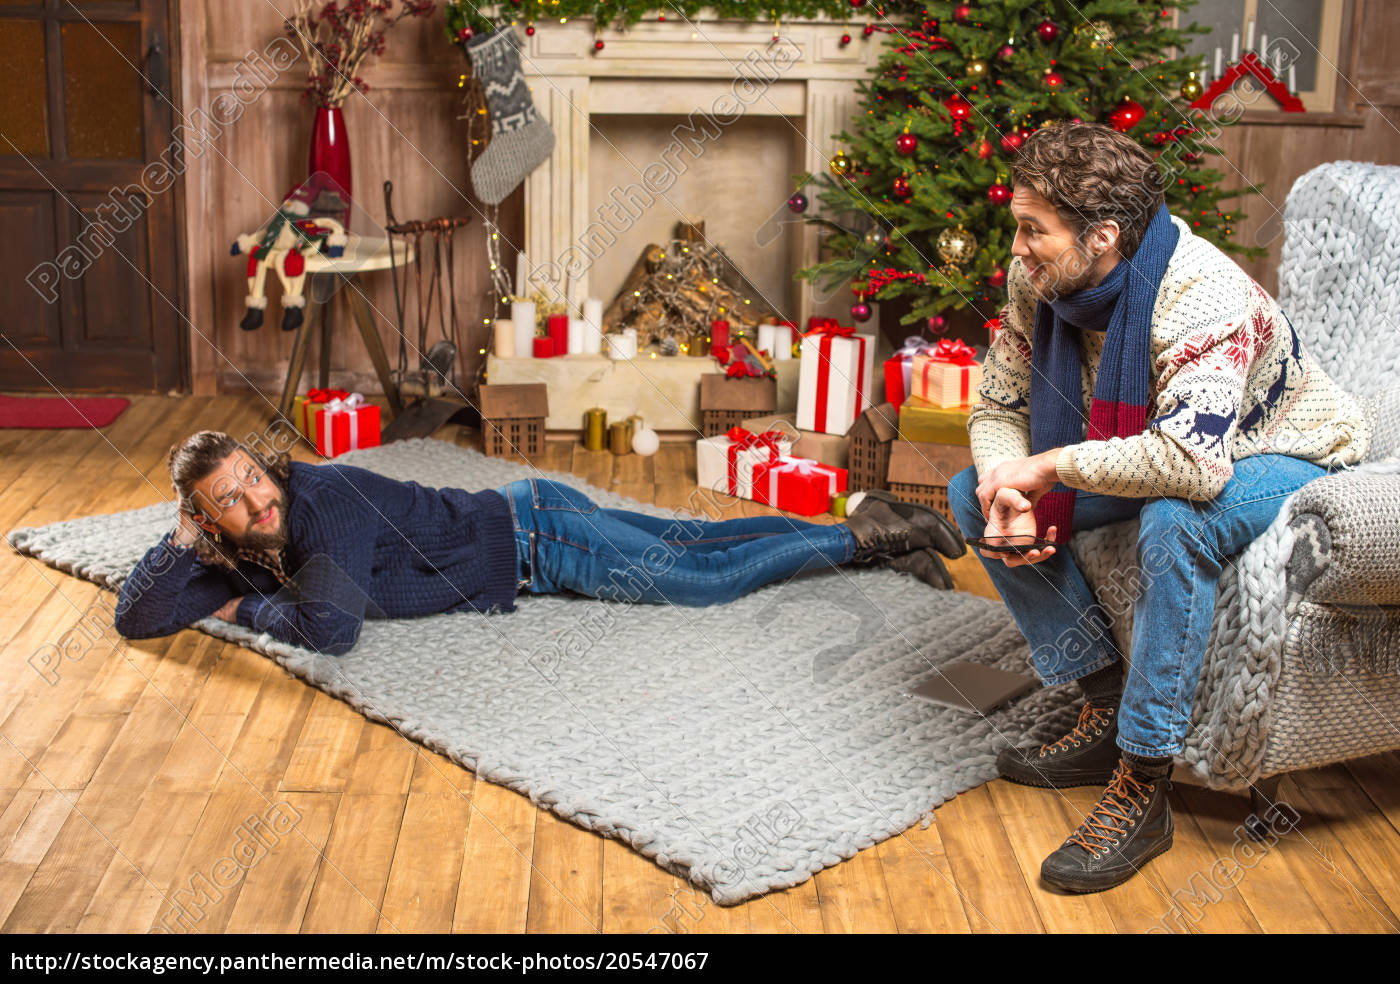 men, talking, in, room, with, christmas - 20547067